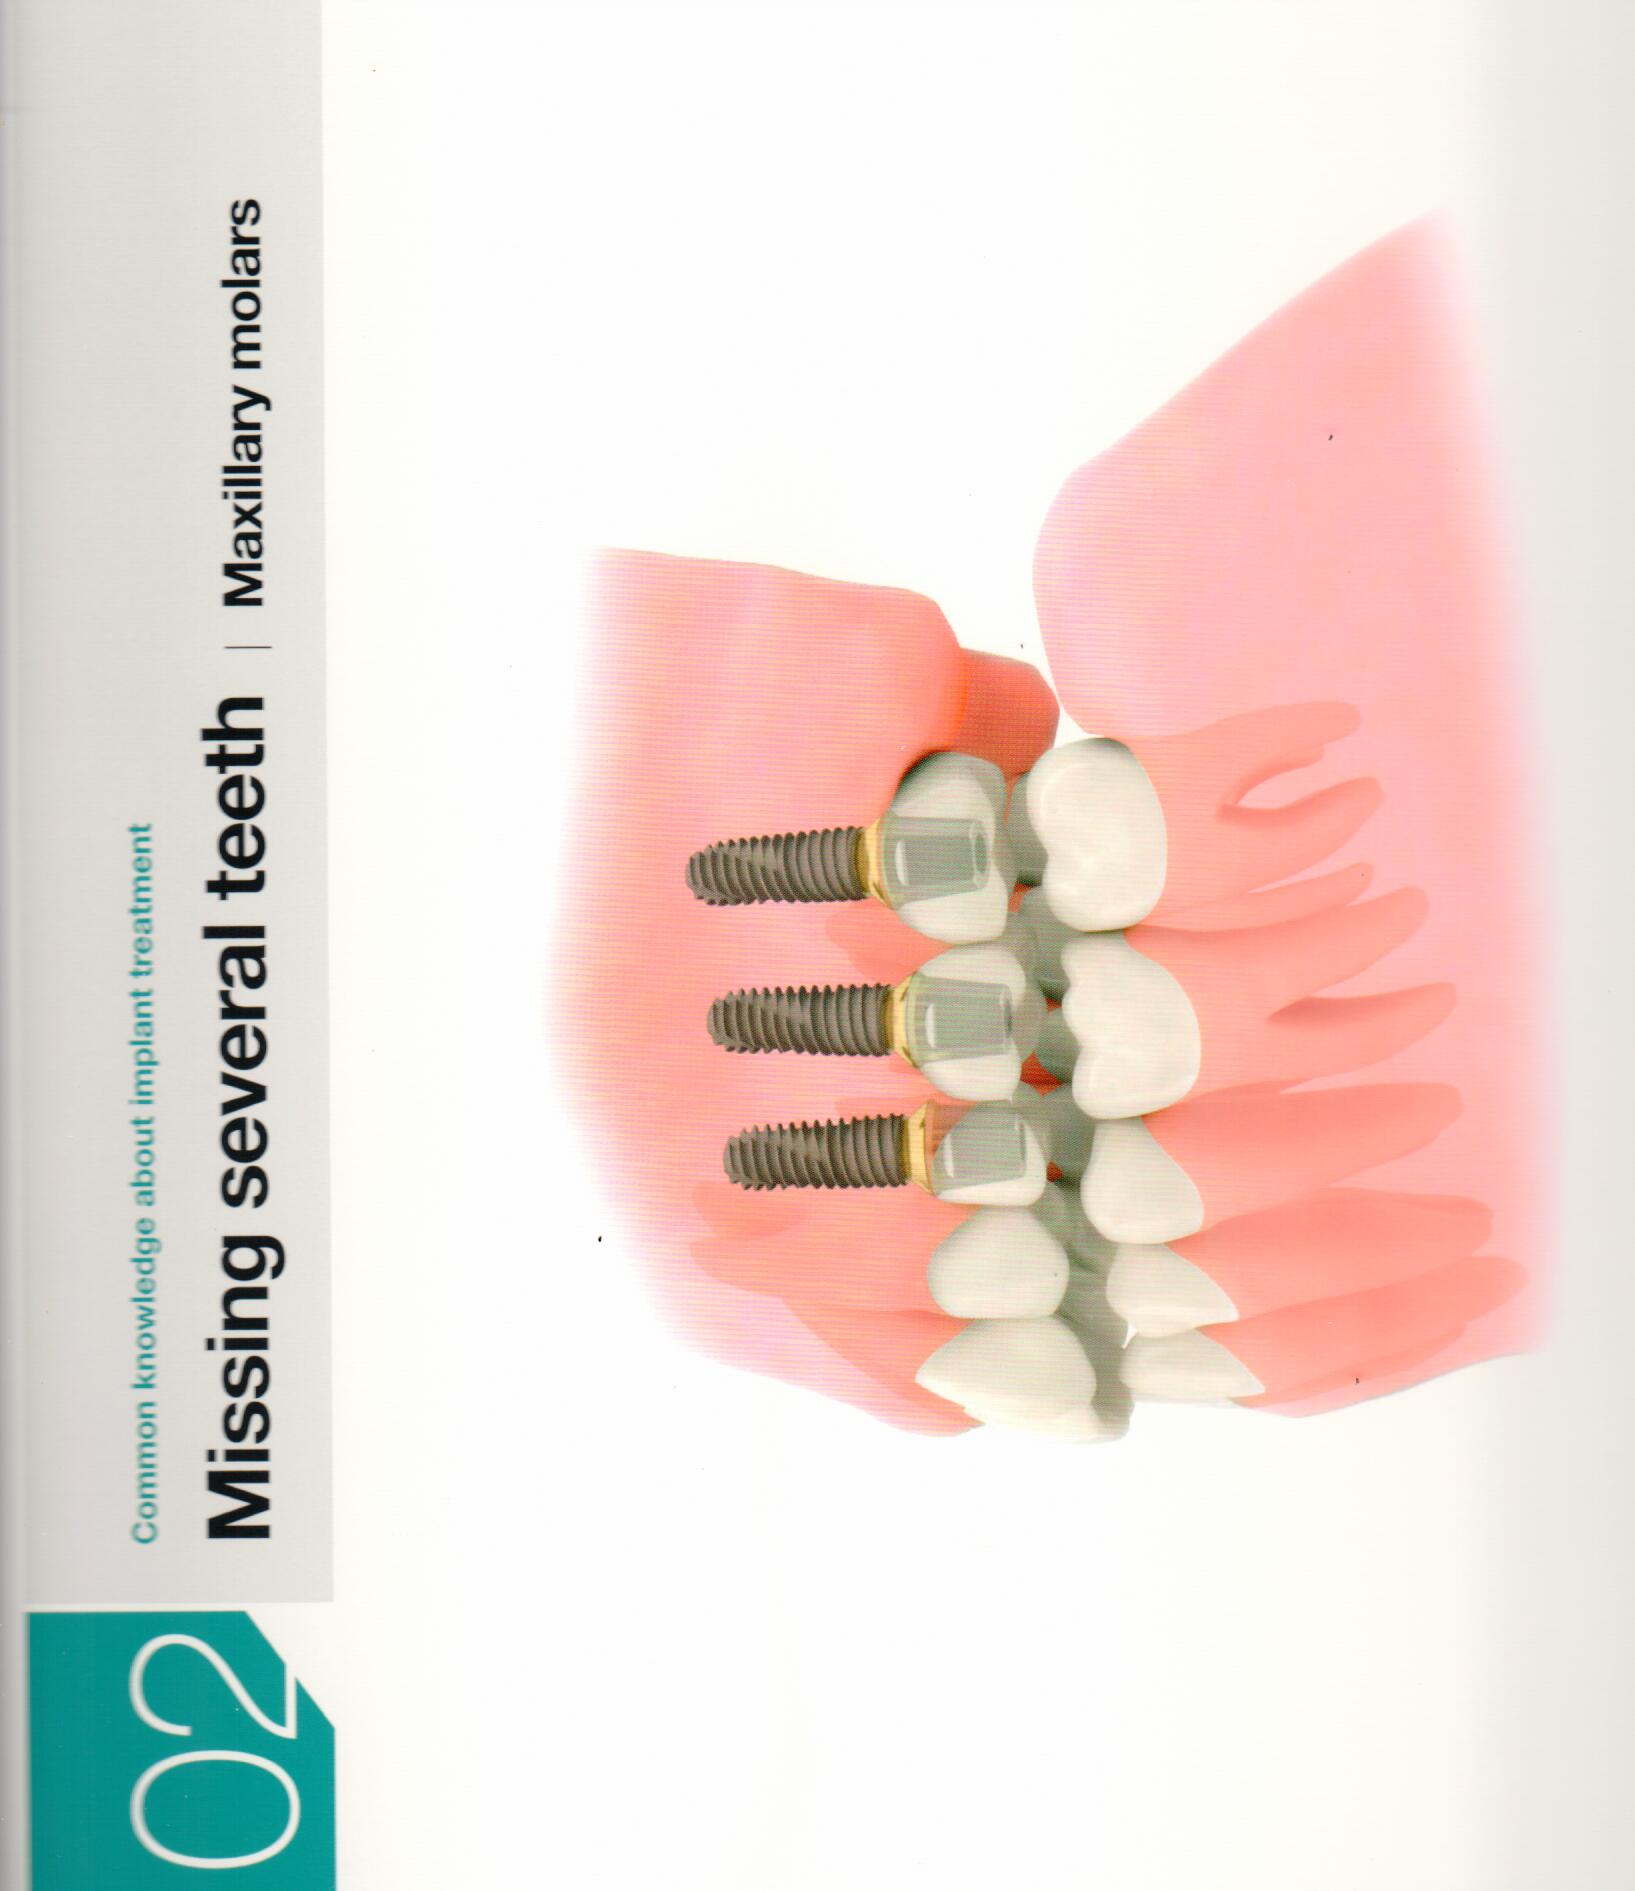 osstem-choosing-the-right-dental-implant-11